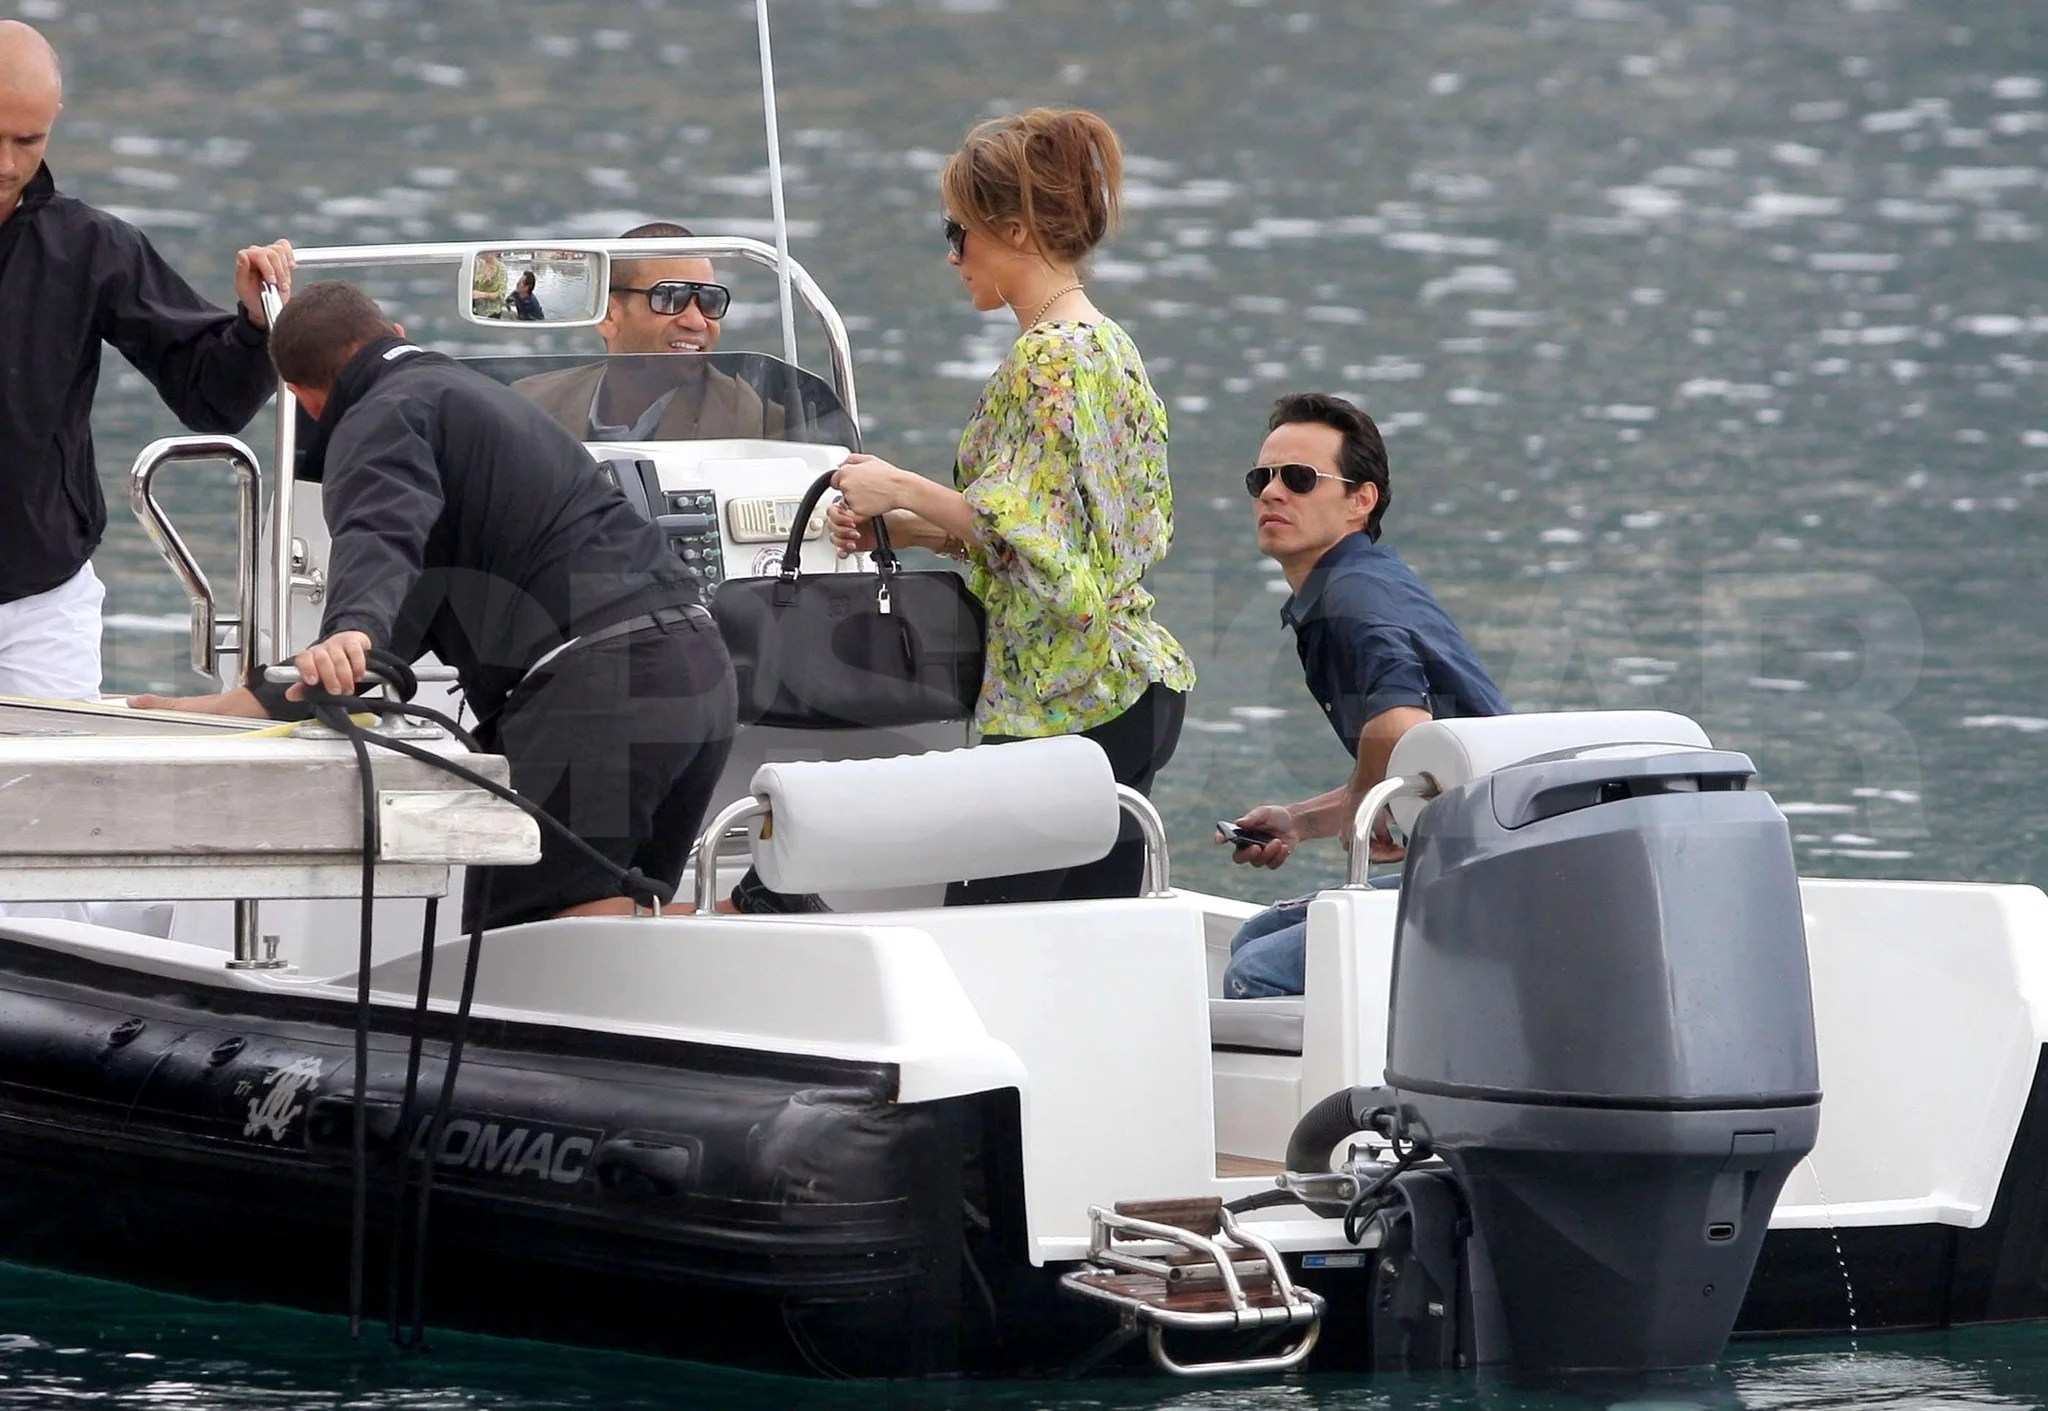 Pictures Of Jennifer Lopez And Marc Anthony Going To Robert Cavallis Yacht In Nice POPSUGAR